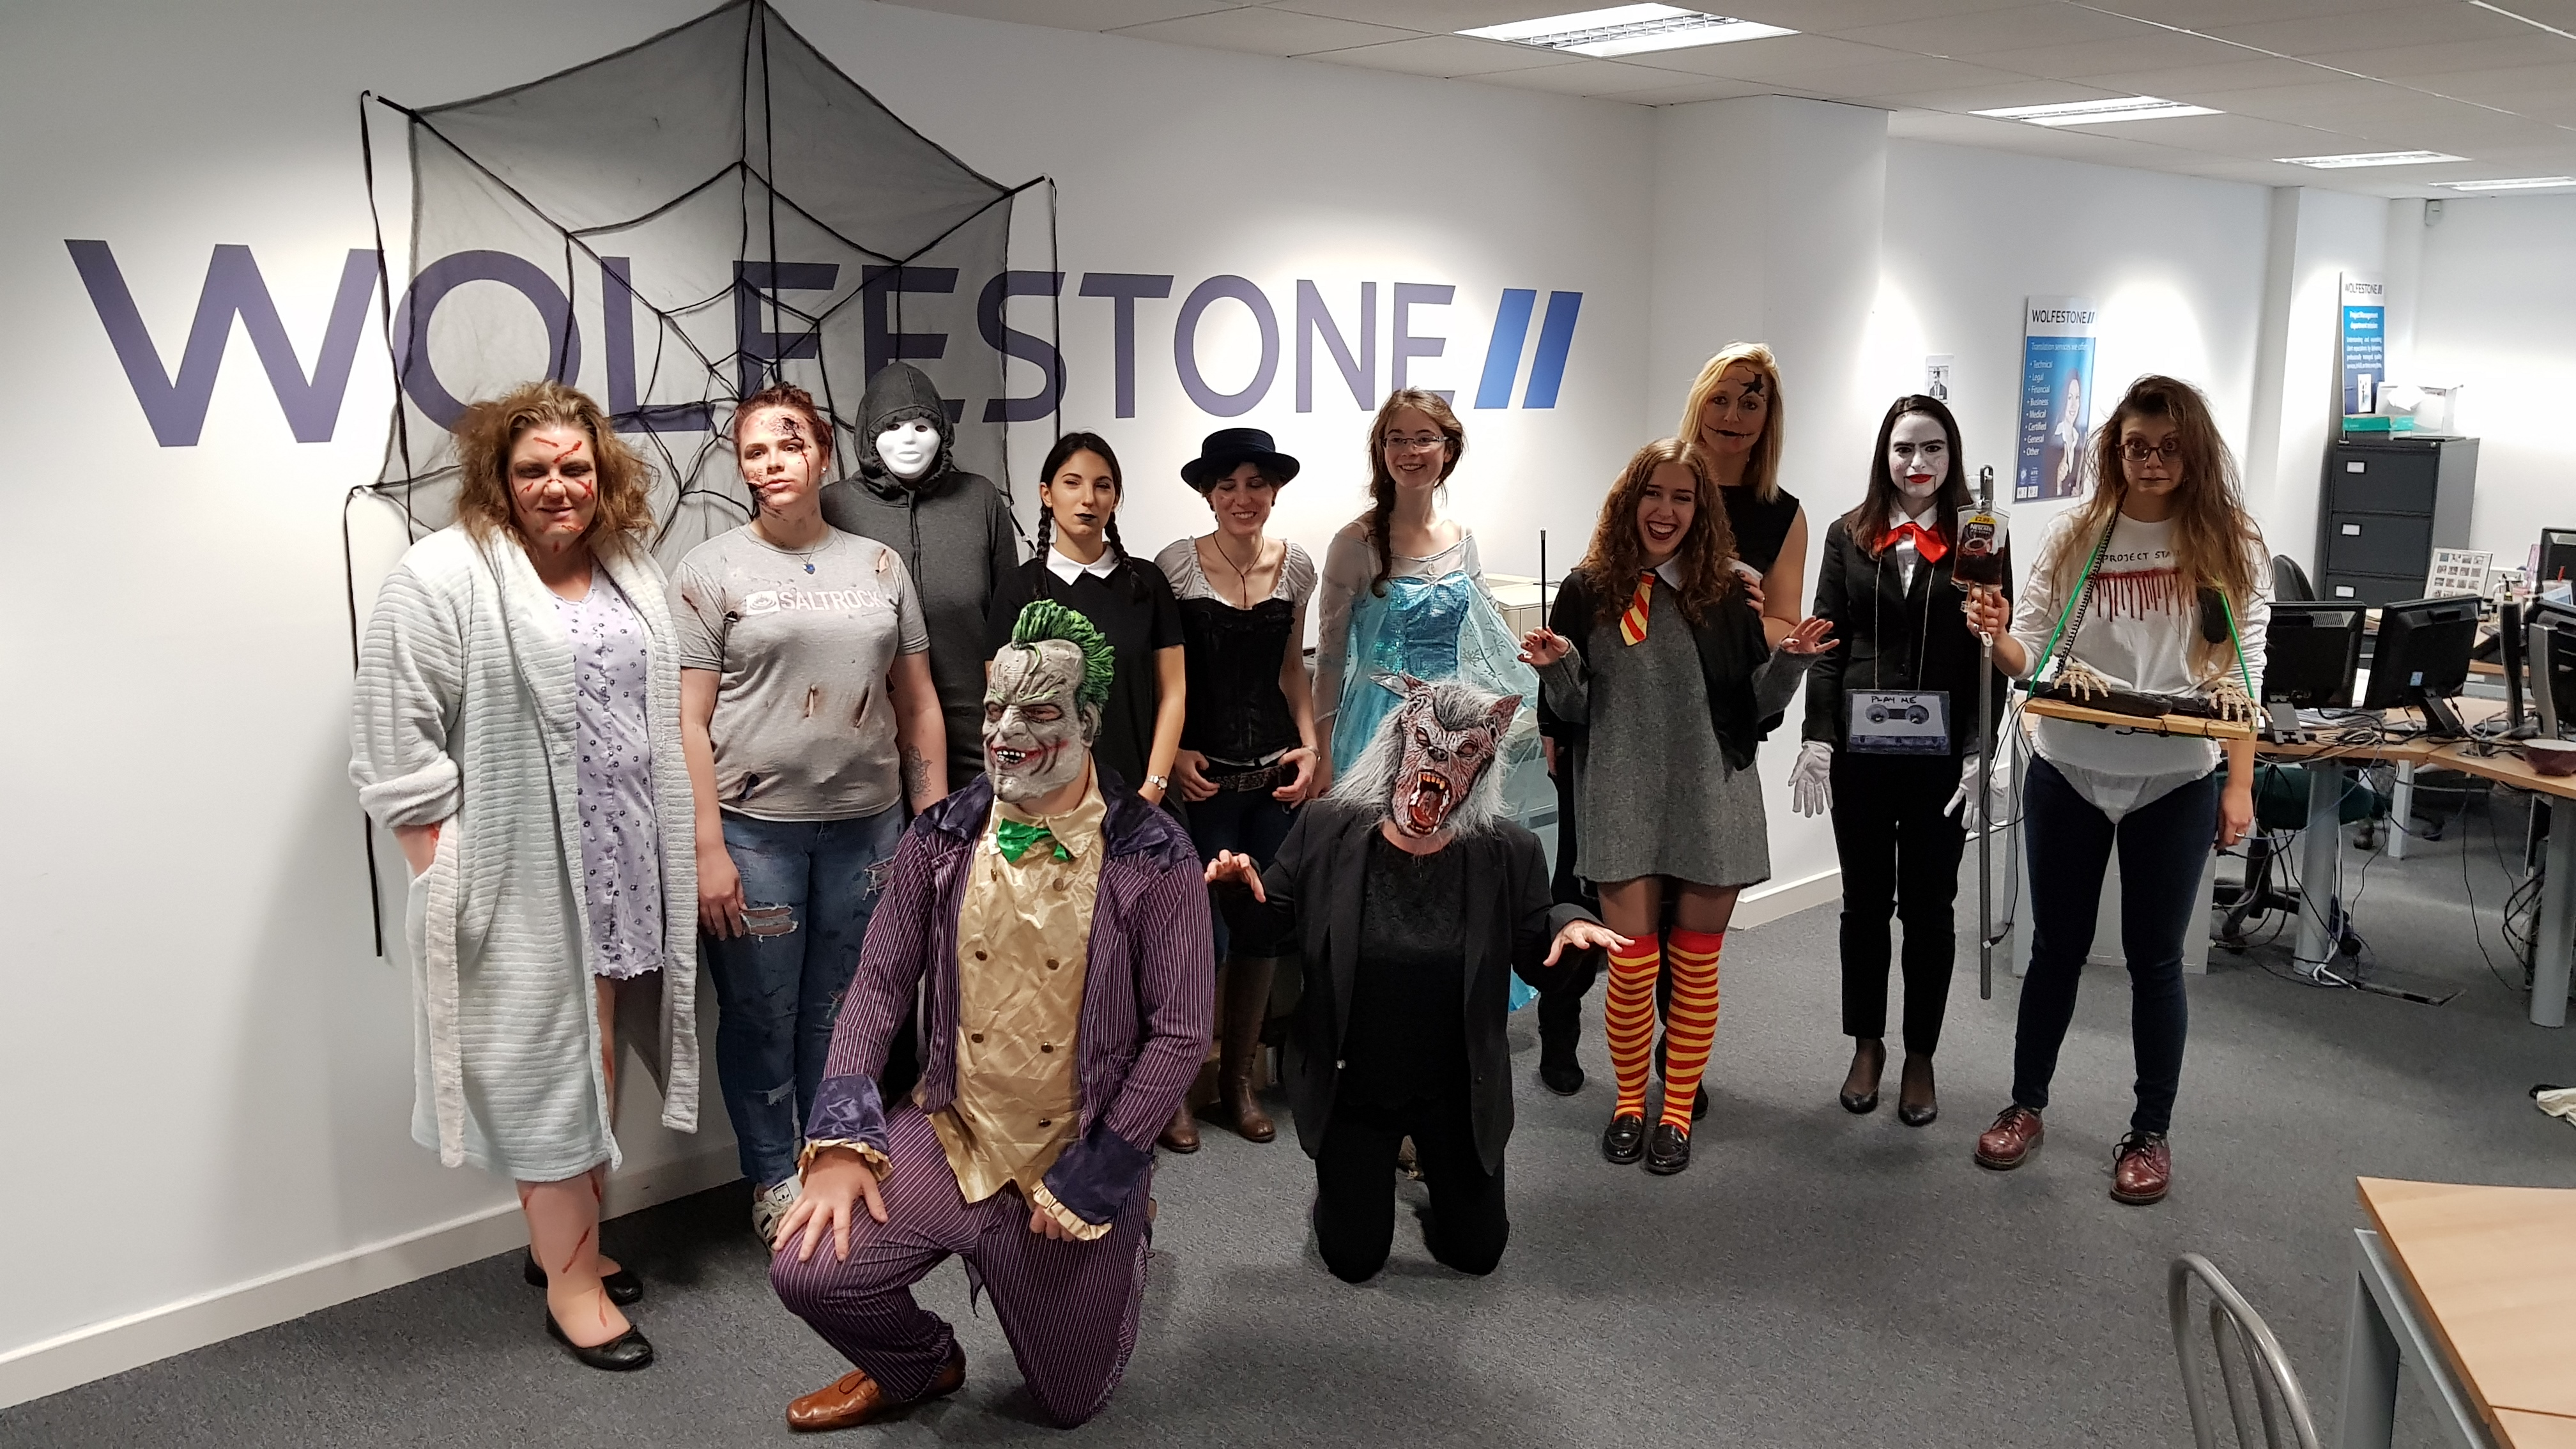 Photograph of Wolfestone employees in their Halloween costumes.